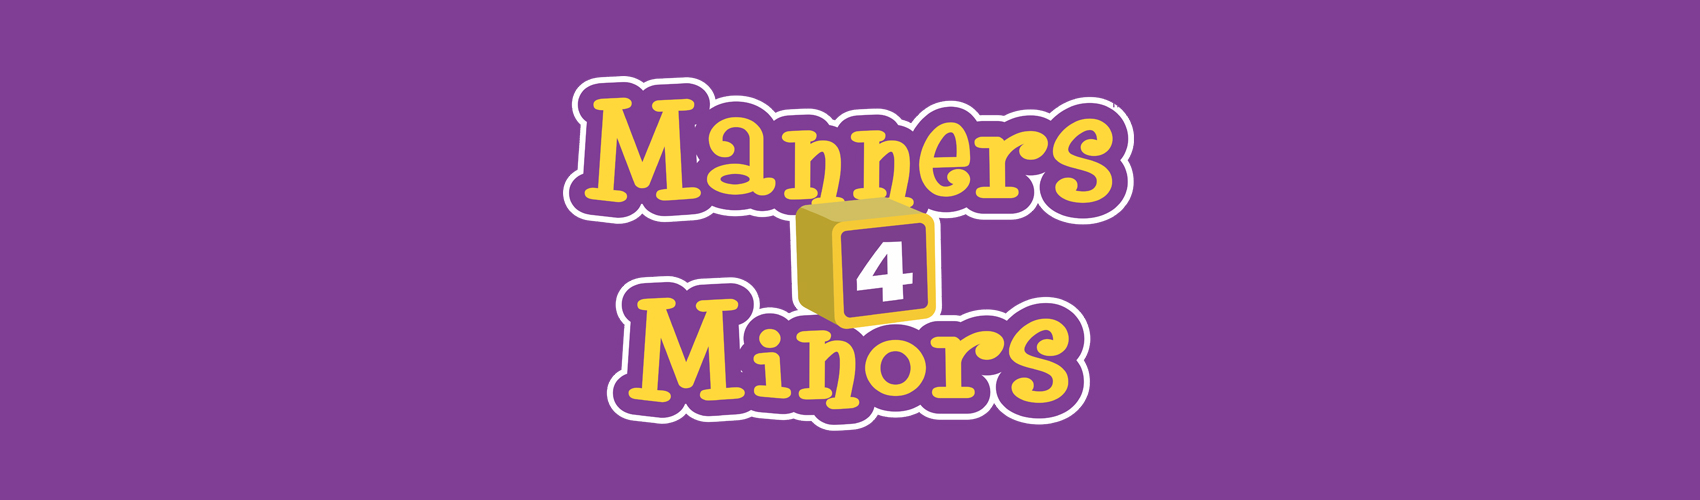 manners-header-big